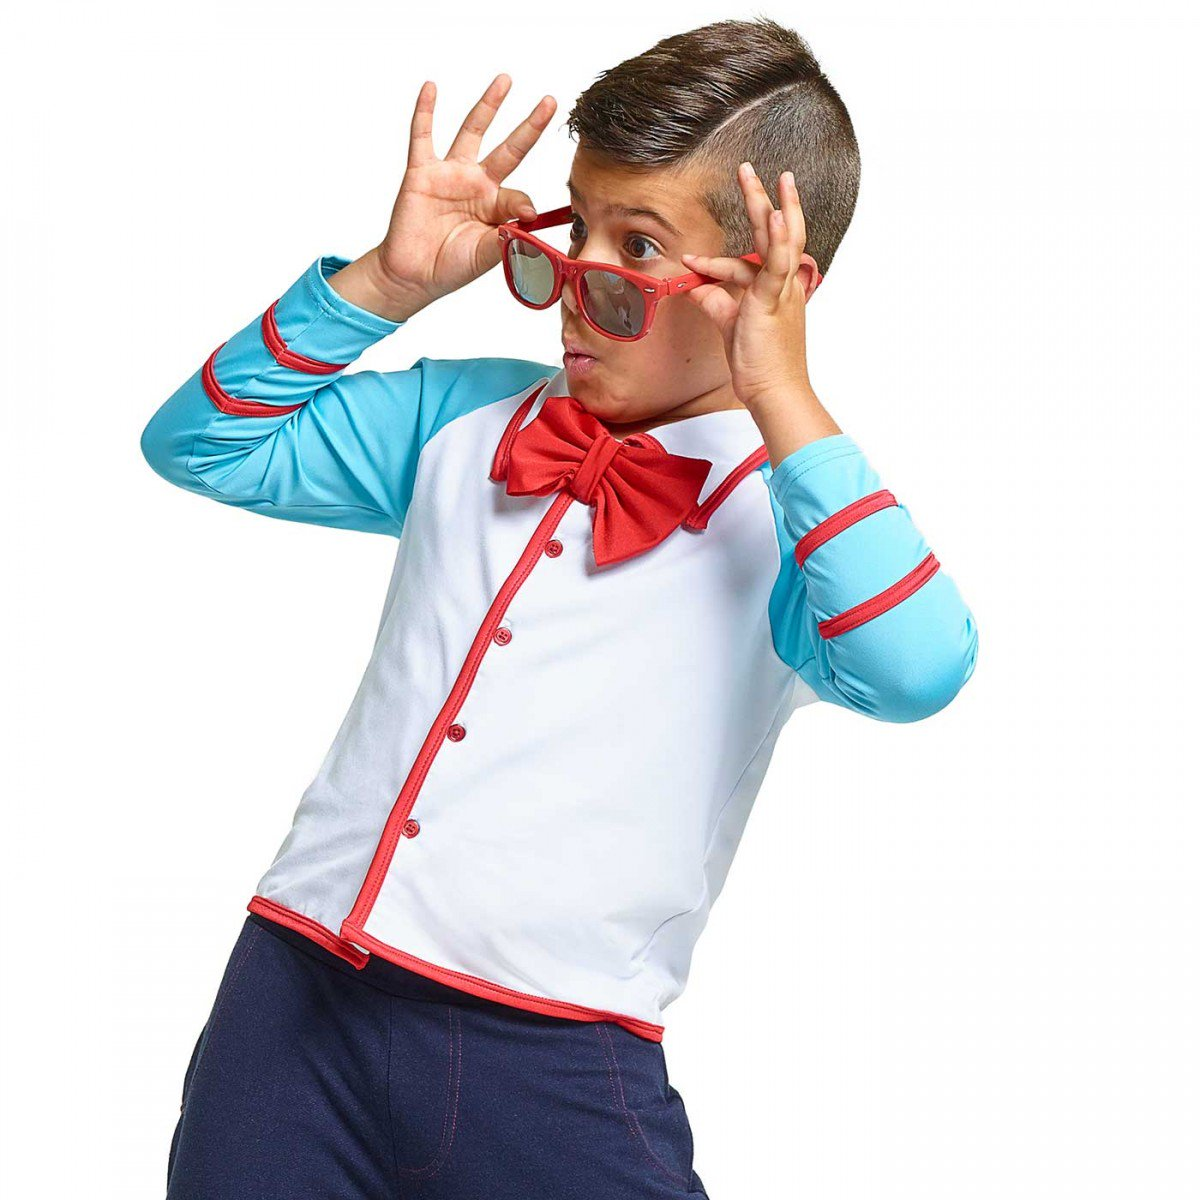 Image result for e2105 wind it up call costumes